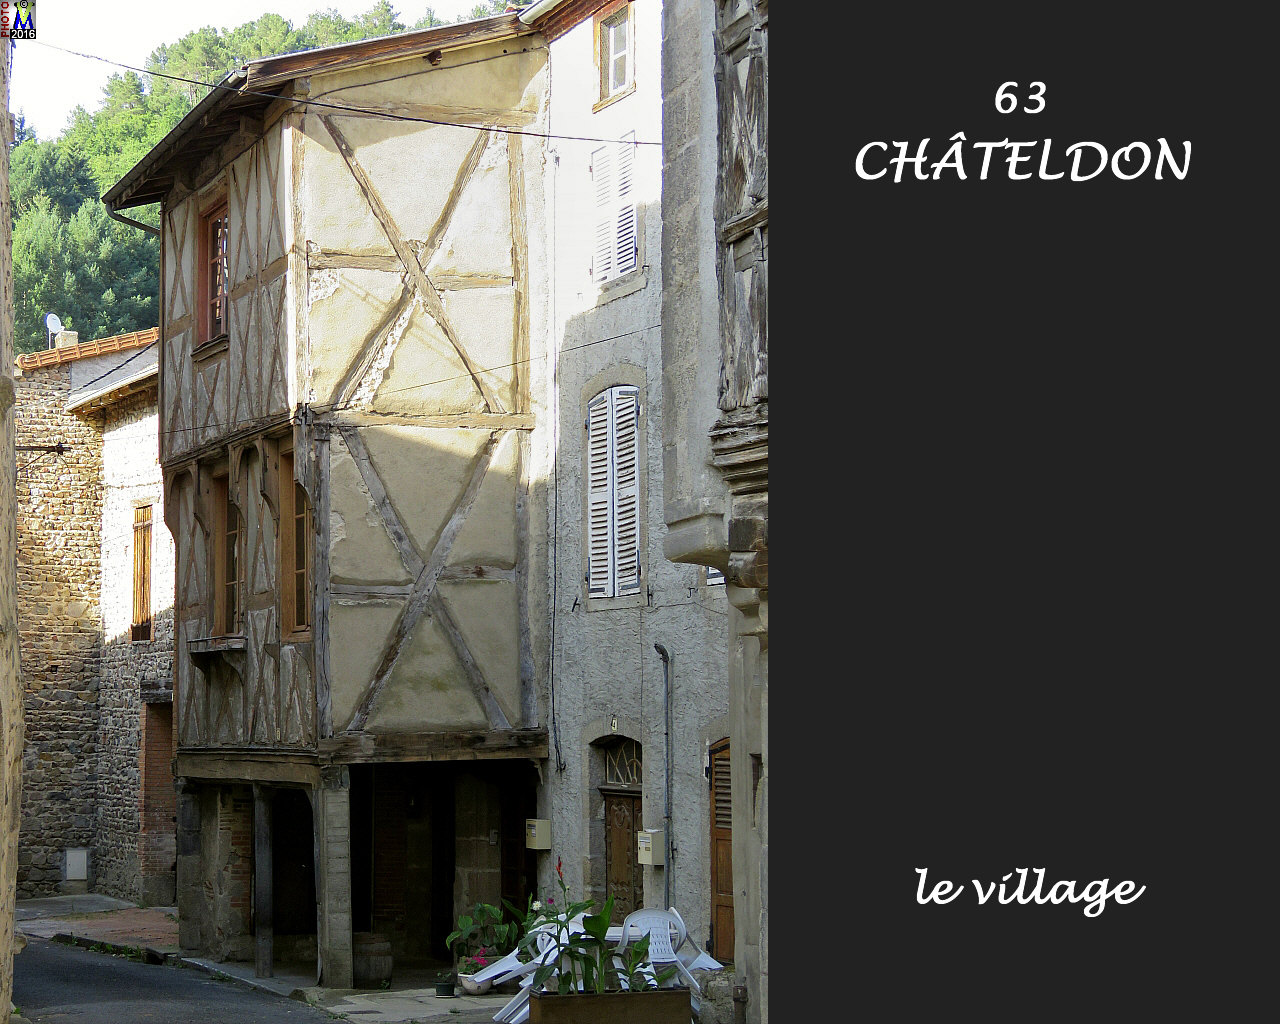 63CHATELDON_village_120.jpg